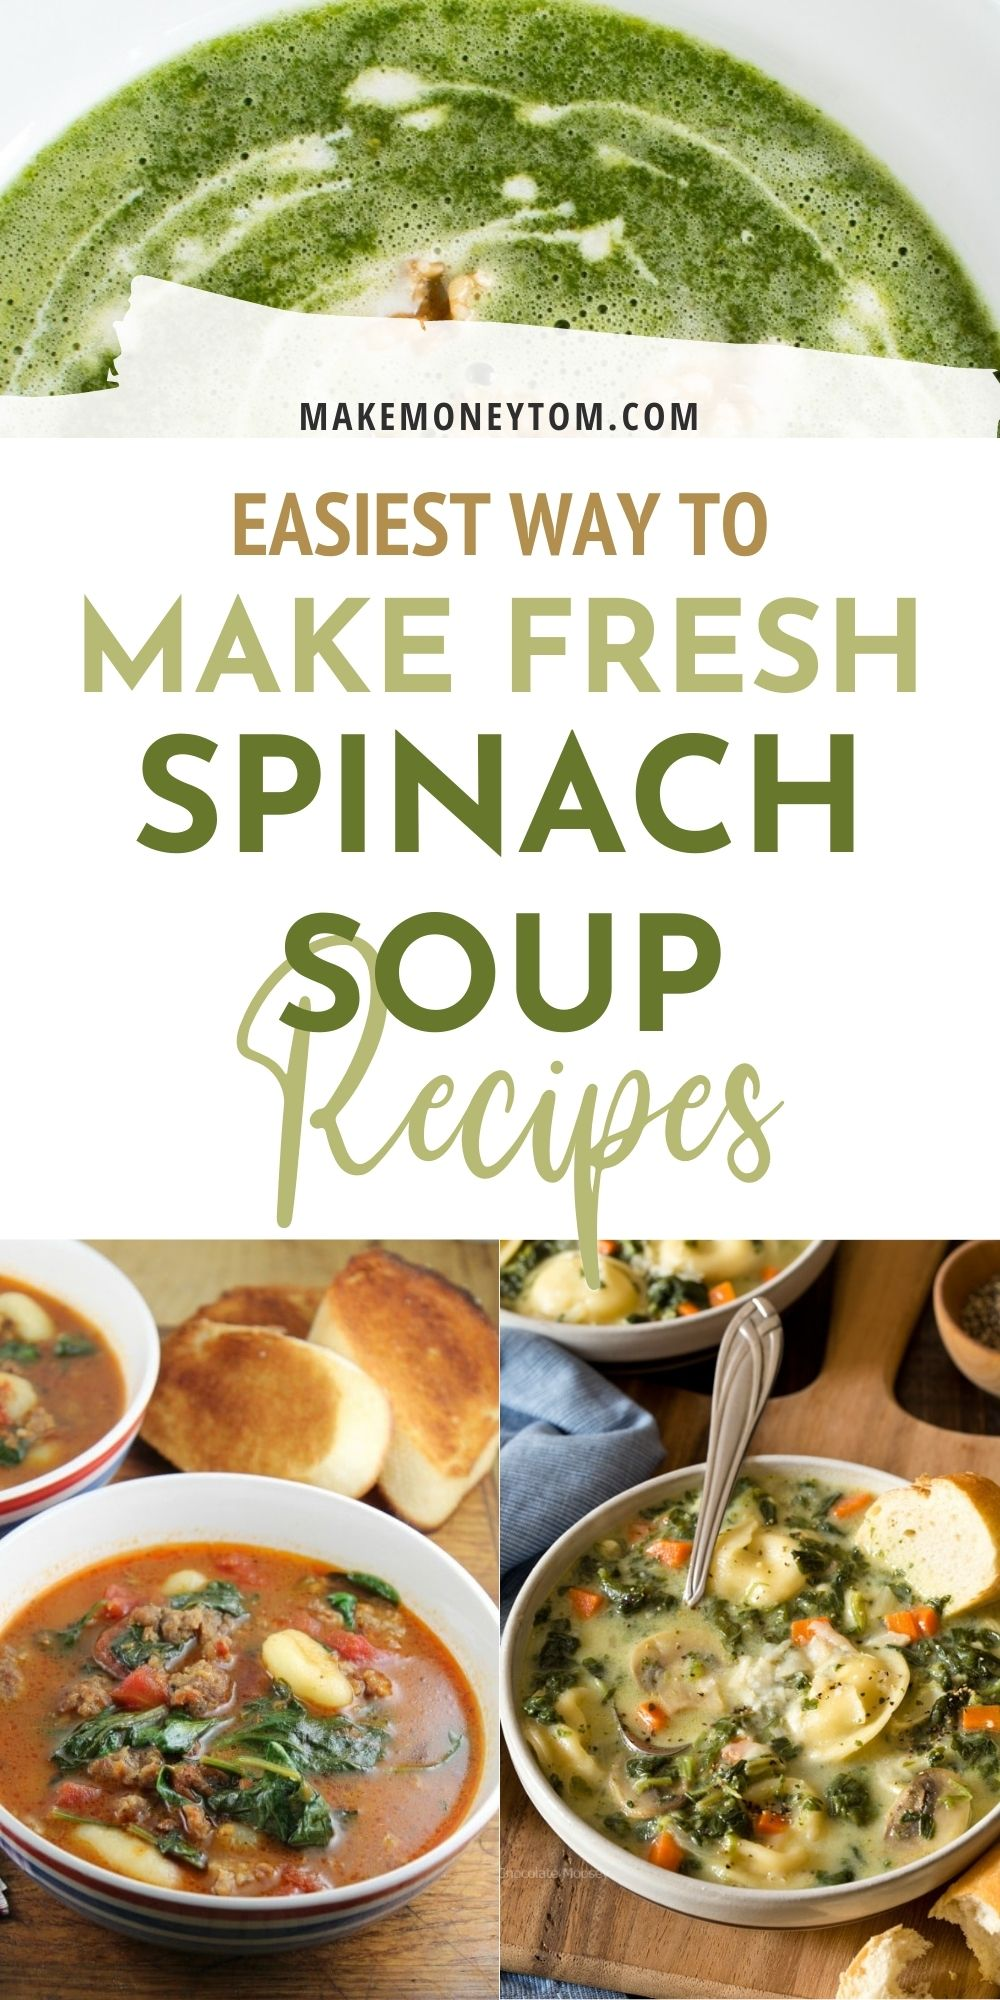 10 Healthy Spinach Soup Recipes For The Chilly Winter Weather